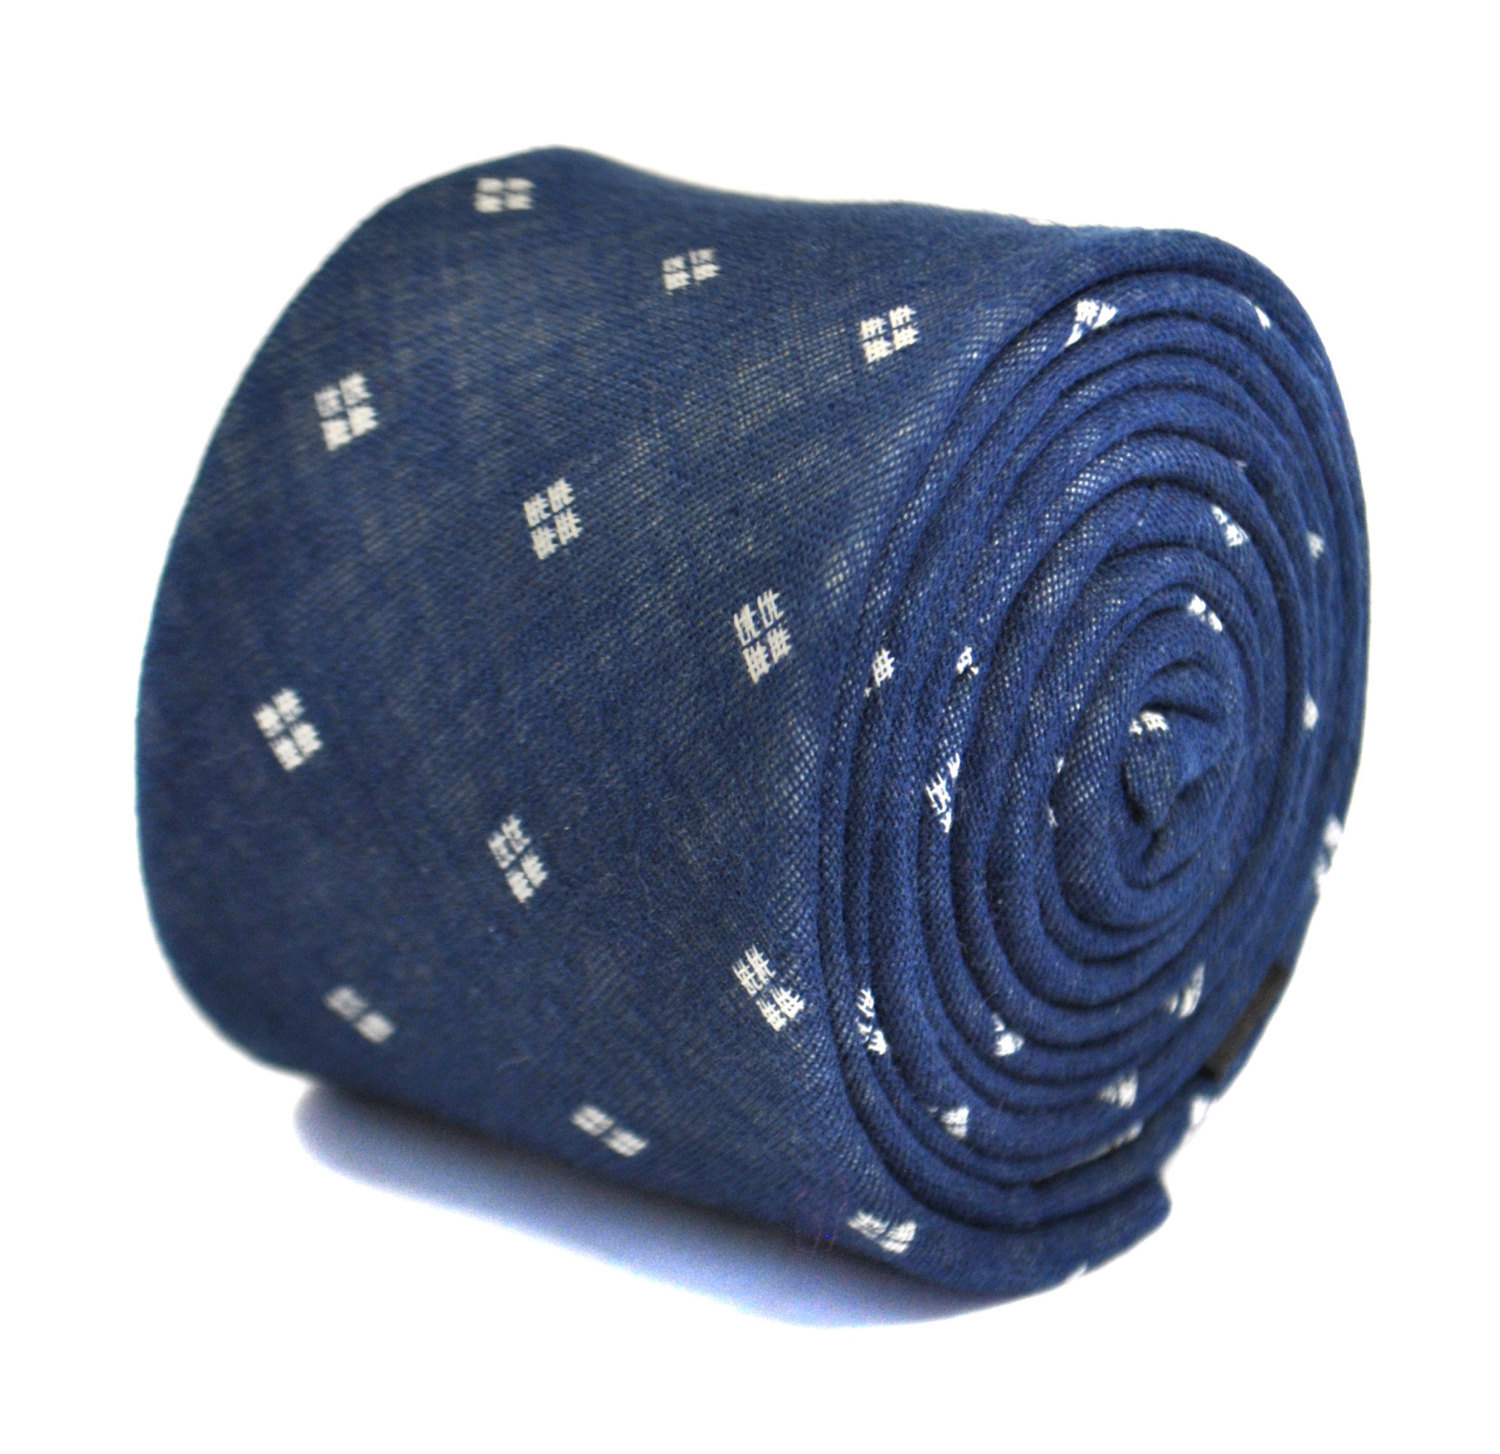 denim blue and white spotted design 100% cotton tie by Frederick Thomas FT2173